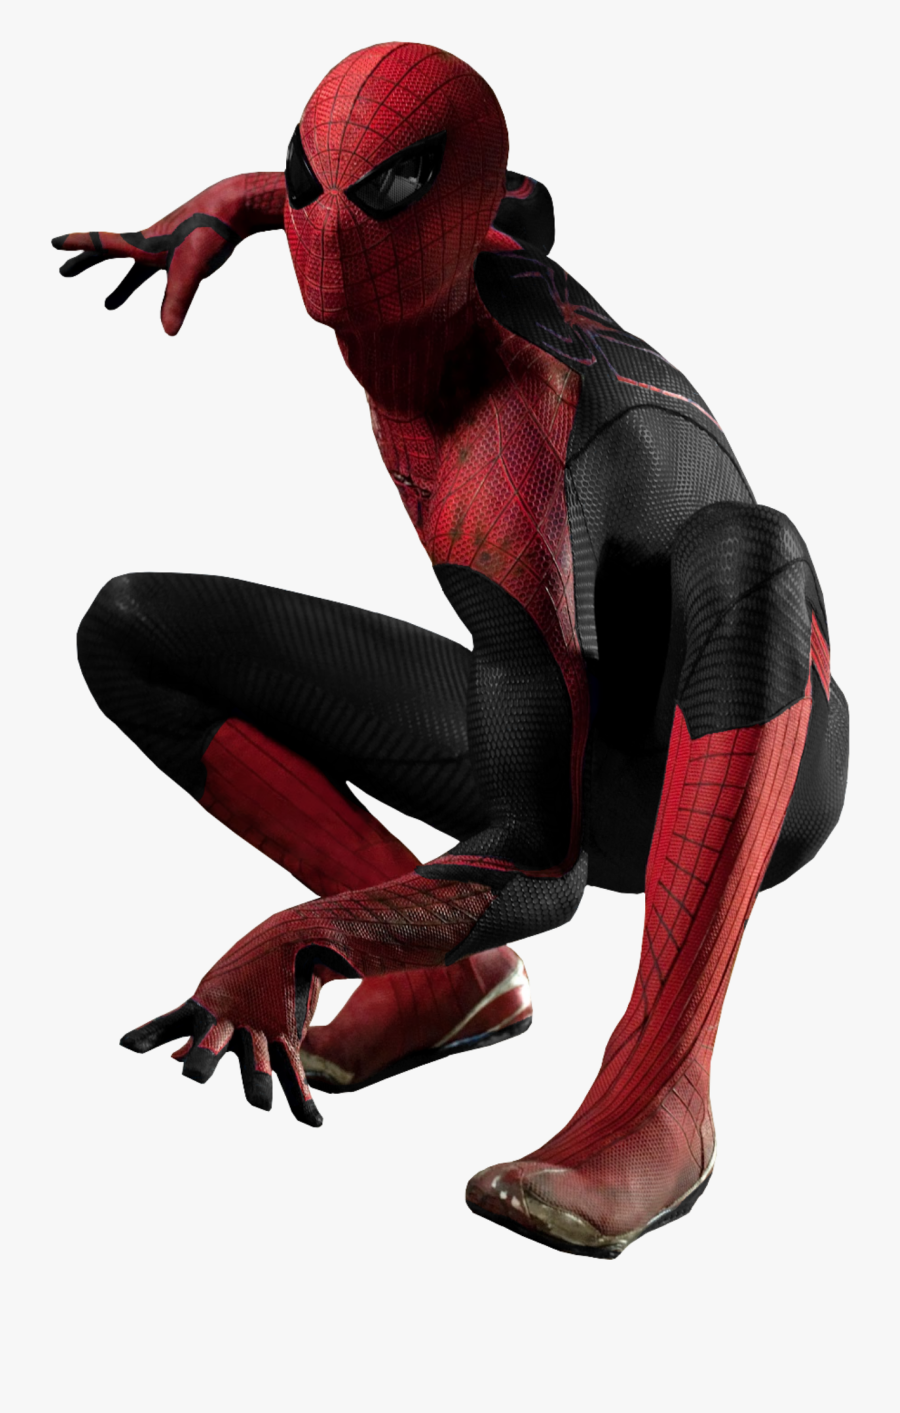 Spider-man Far From Home Png Transparent Image - Amazing Spider Man Png, Transparent Clipart